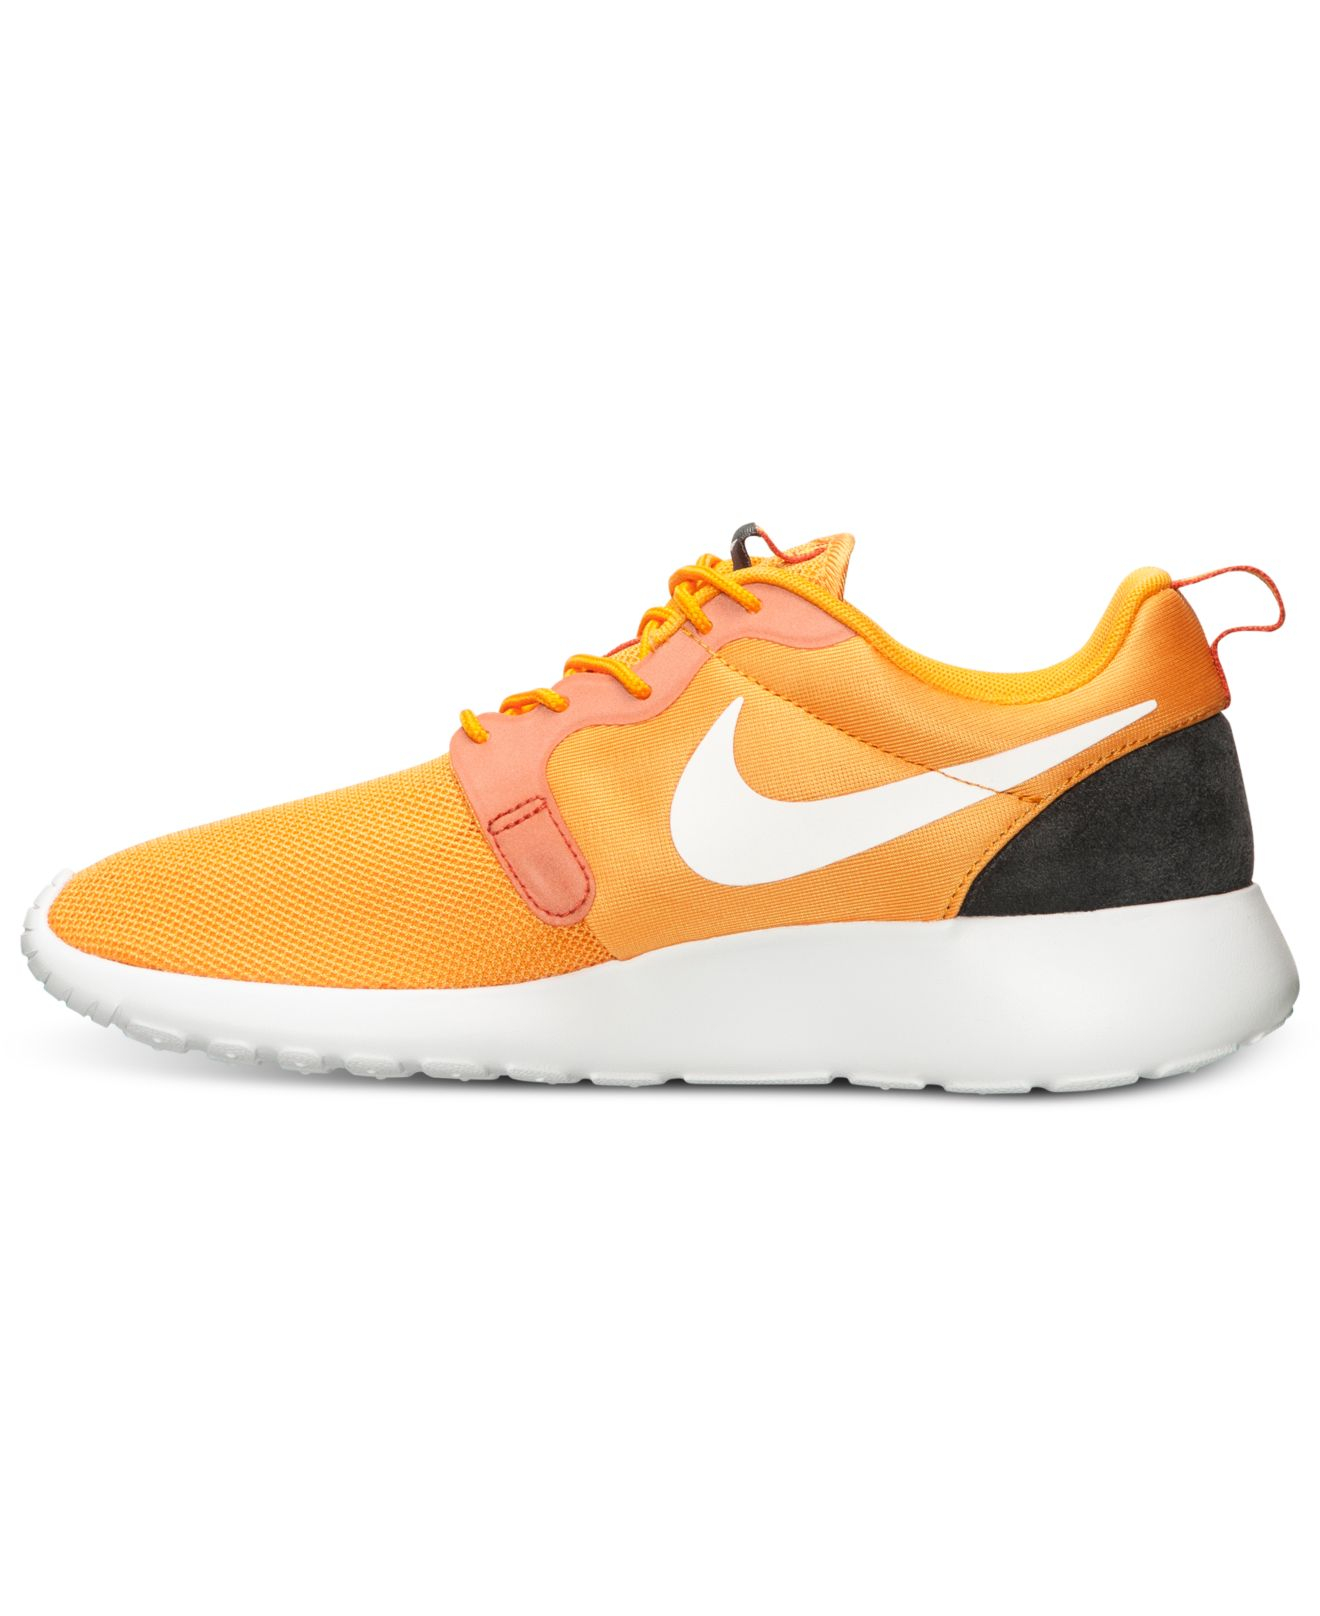 Mens Roshe Run Suede Casual Shoes